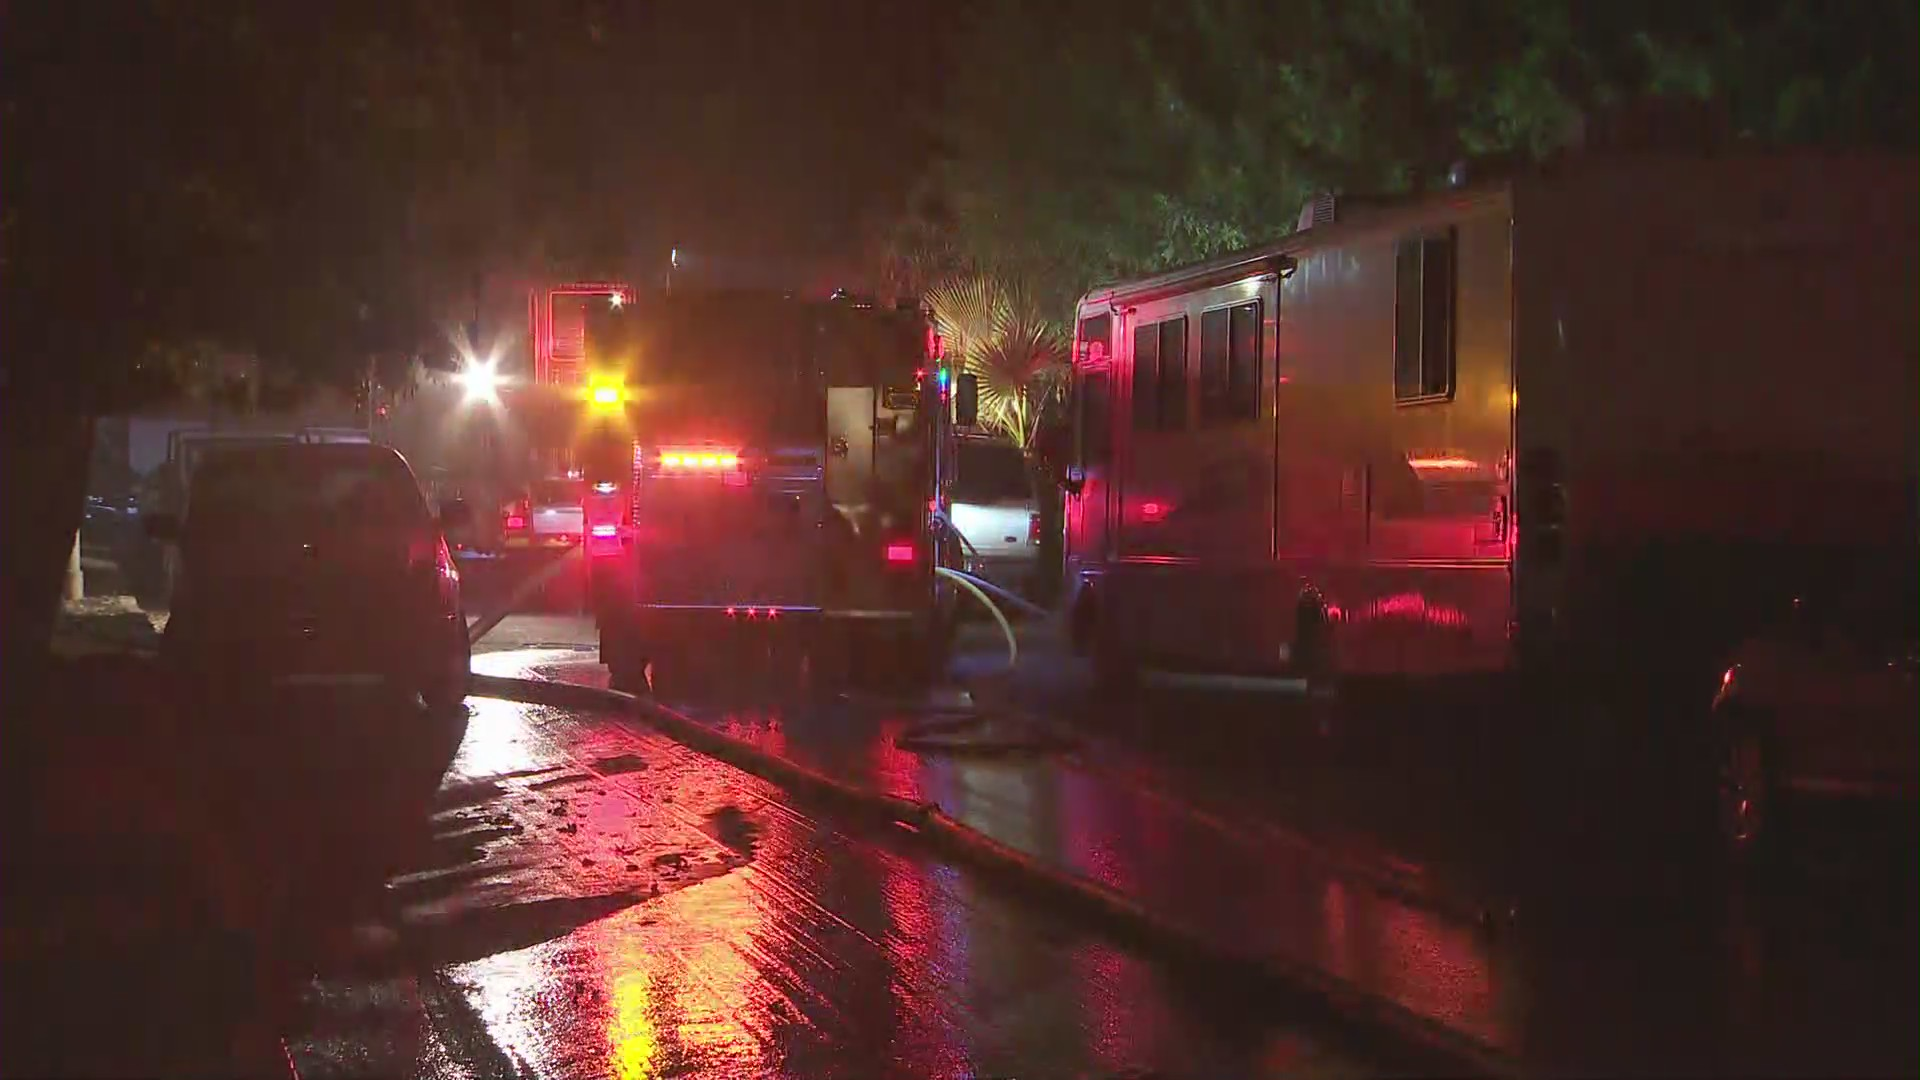 Firefighters respond to a deadly house fire 11538 Kismet Avenue in Lake View Terrace on Sept. 27, 2020. (KTLA)